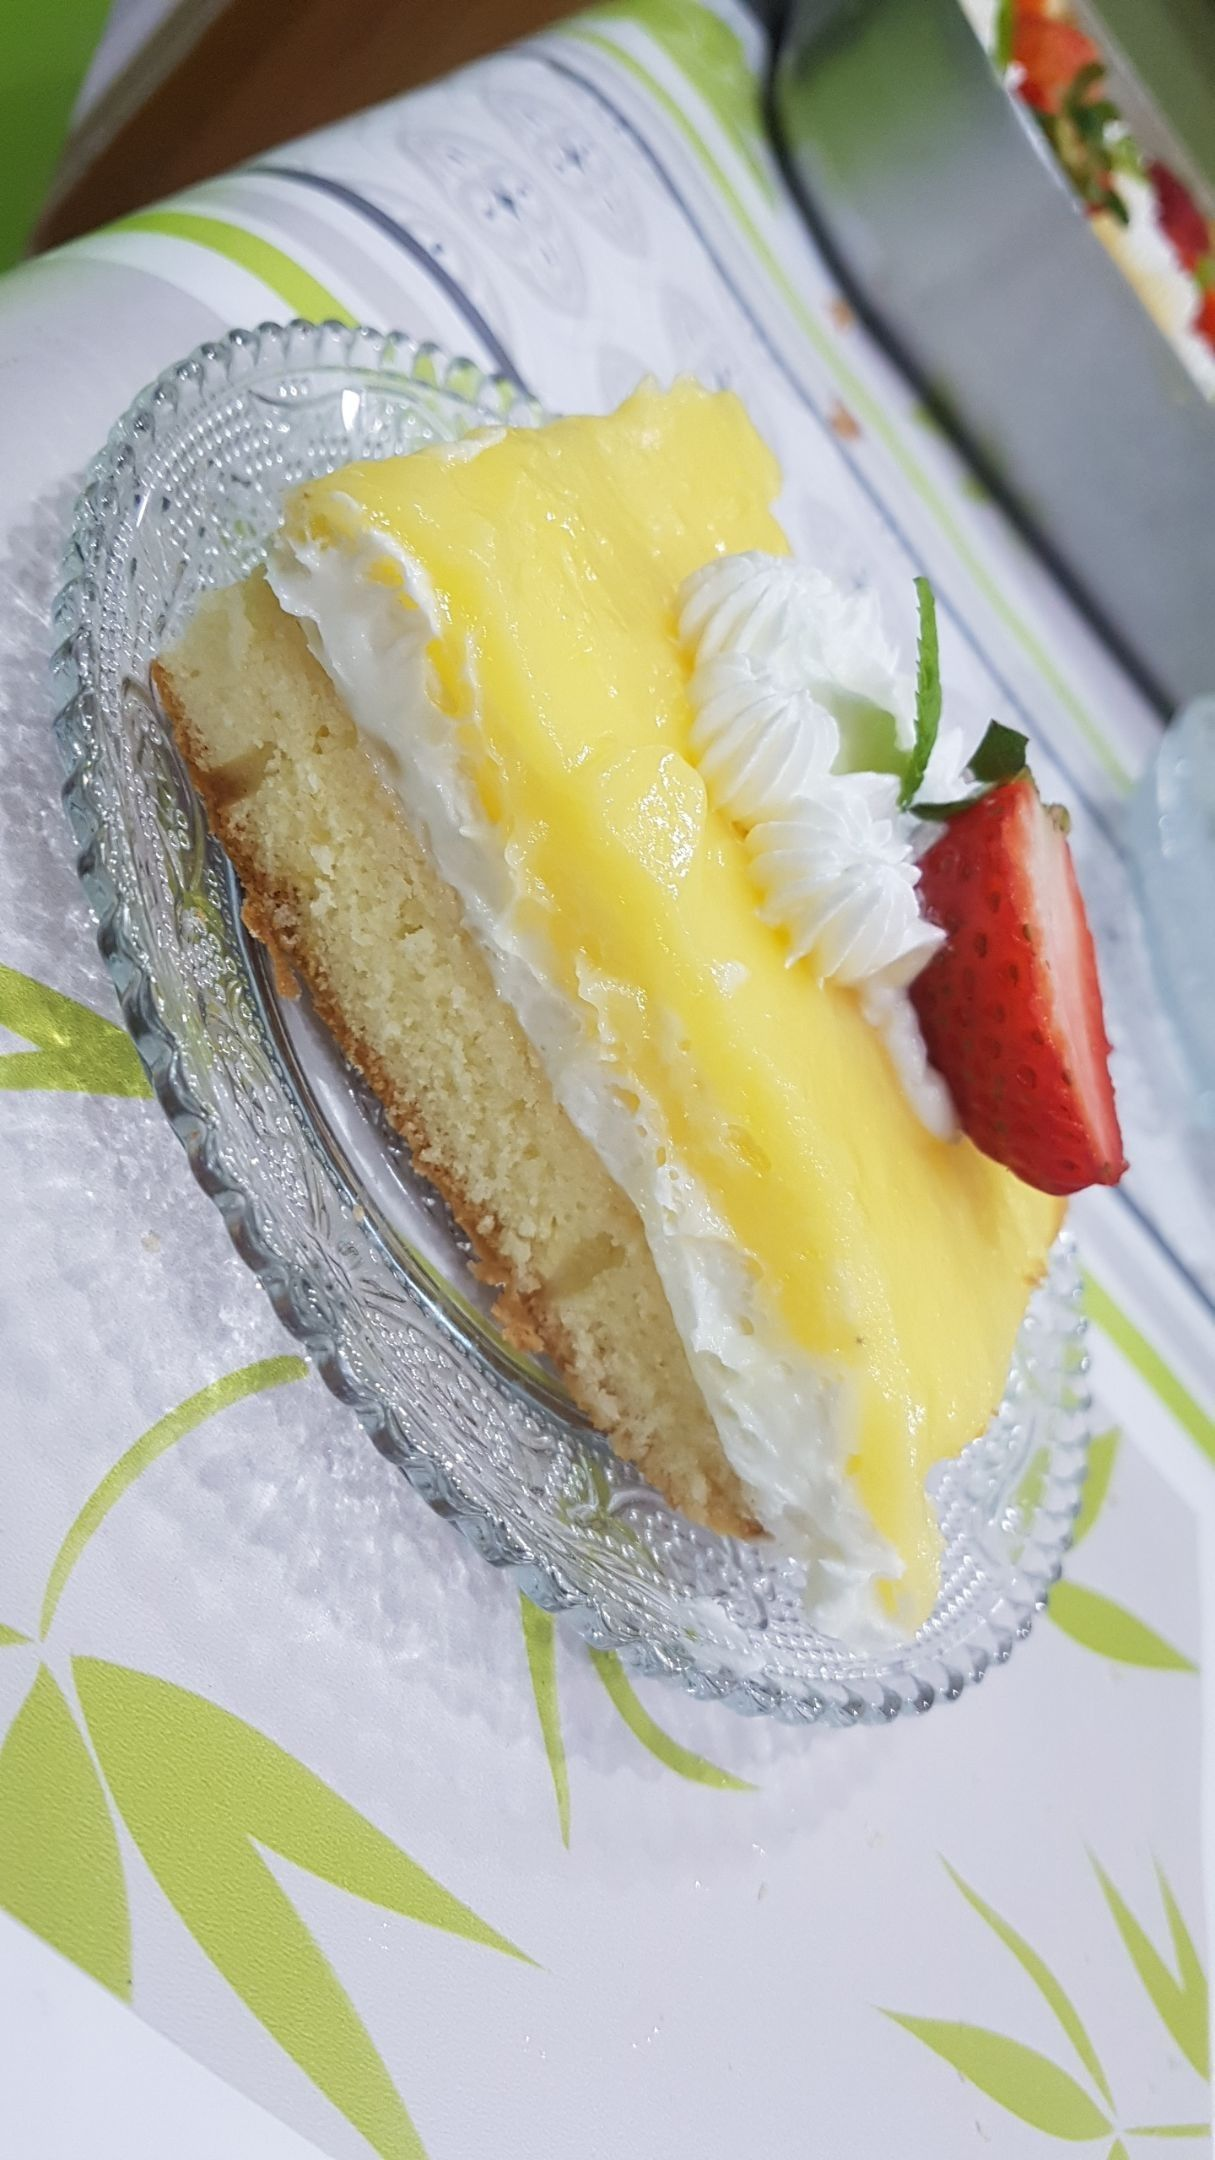 Pin By Bįcha Ze On مأكولاتي Food Desserts Cheesecake